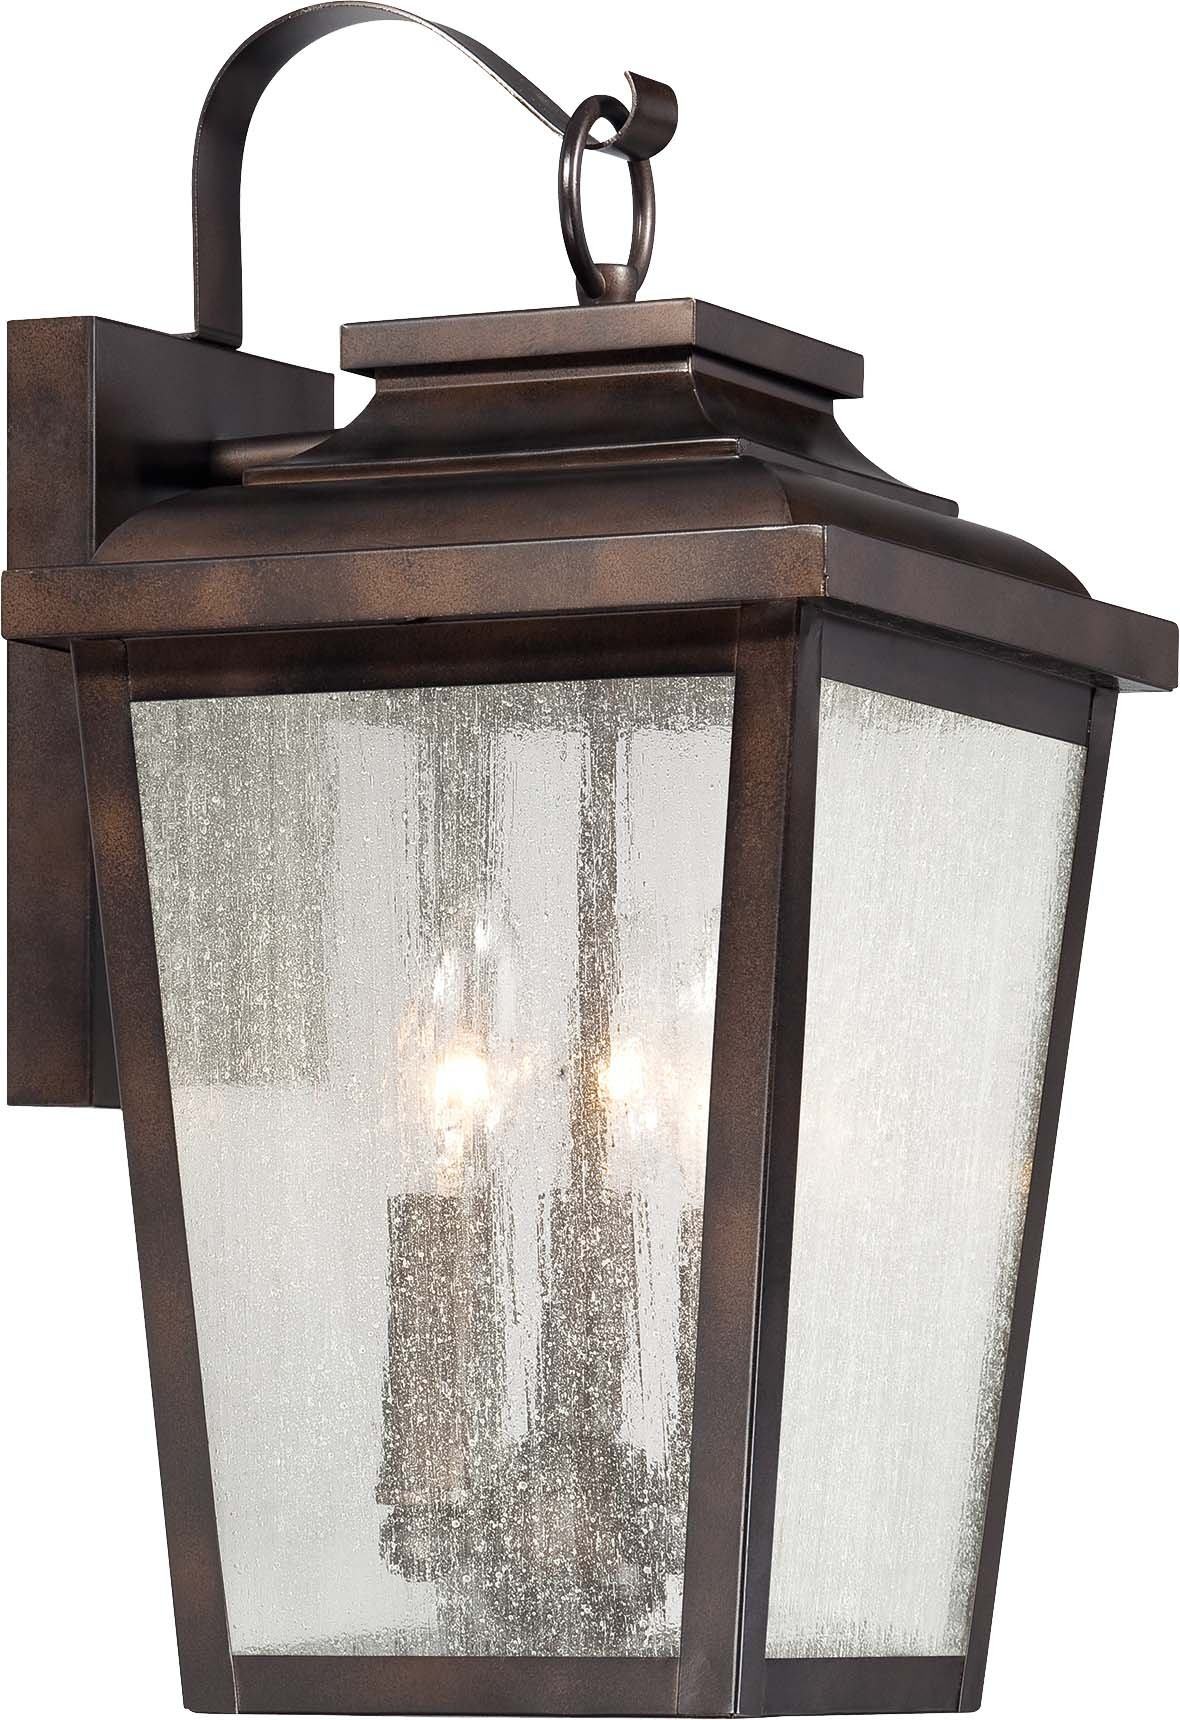 Minka Lavery 72172-189, Irvington Manor Aluminum Outdoor Bronze Wall Sconce Light, 225 Watts with Clear Seeded Glass by Minka Lavery